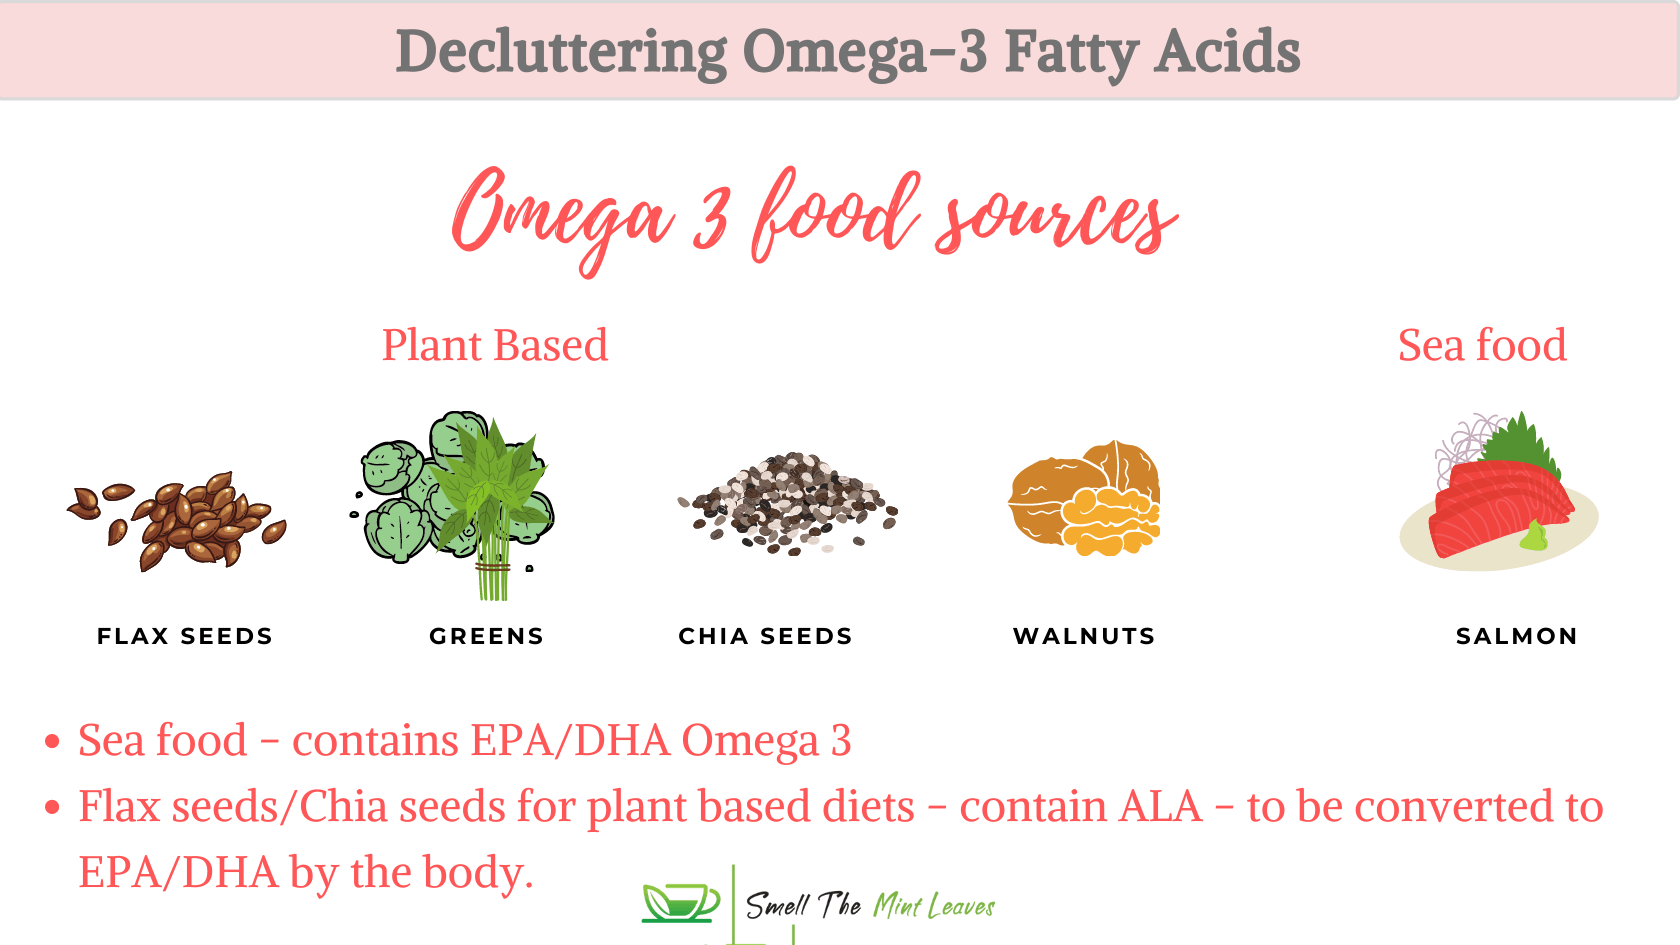 Omega-3 fatty acids dietary sources